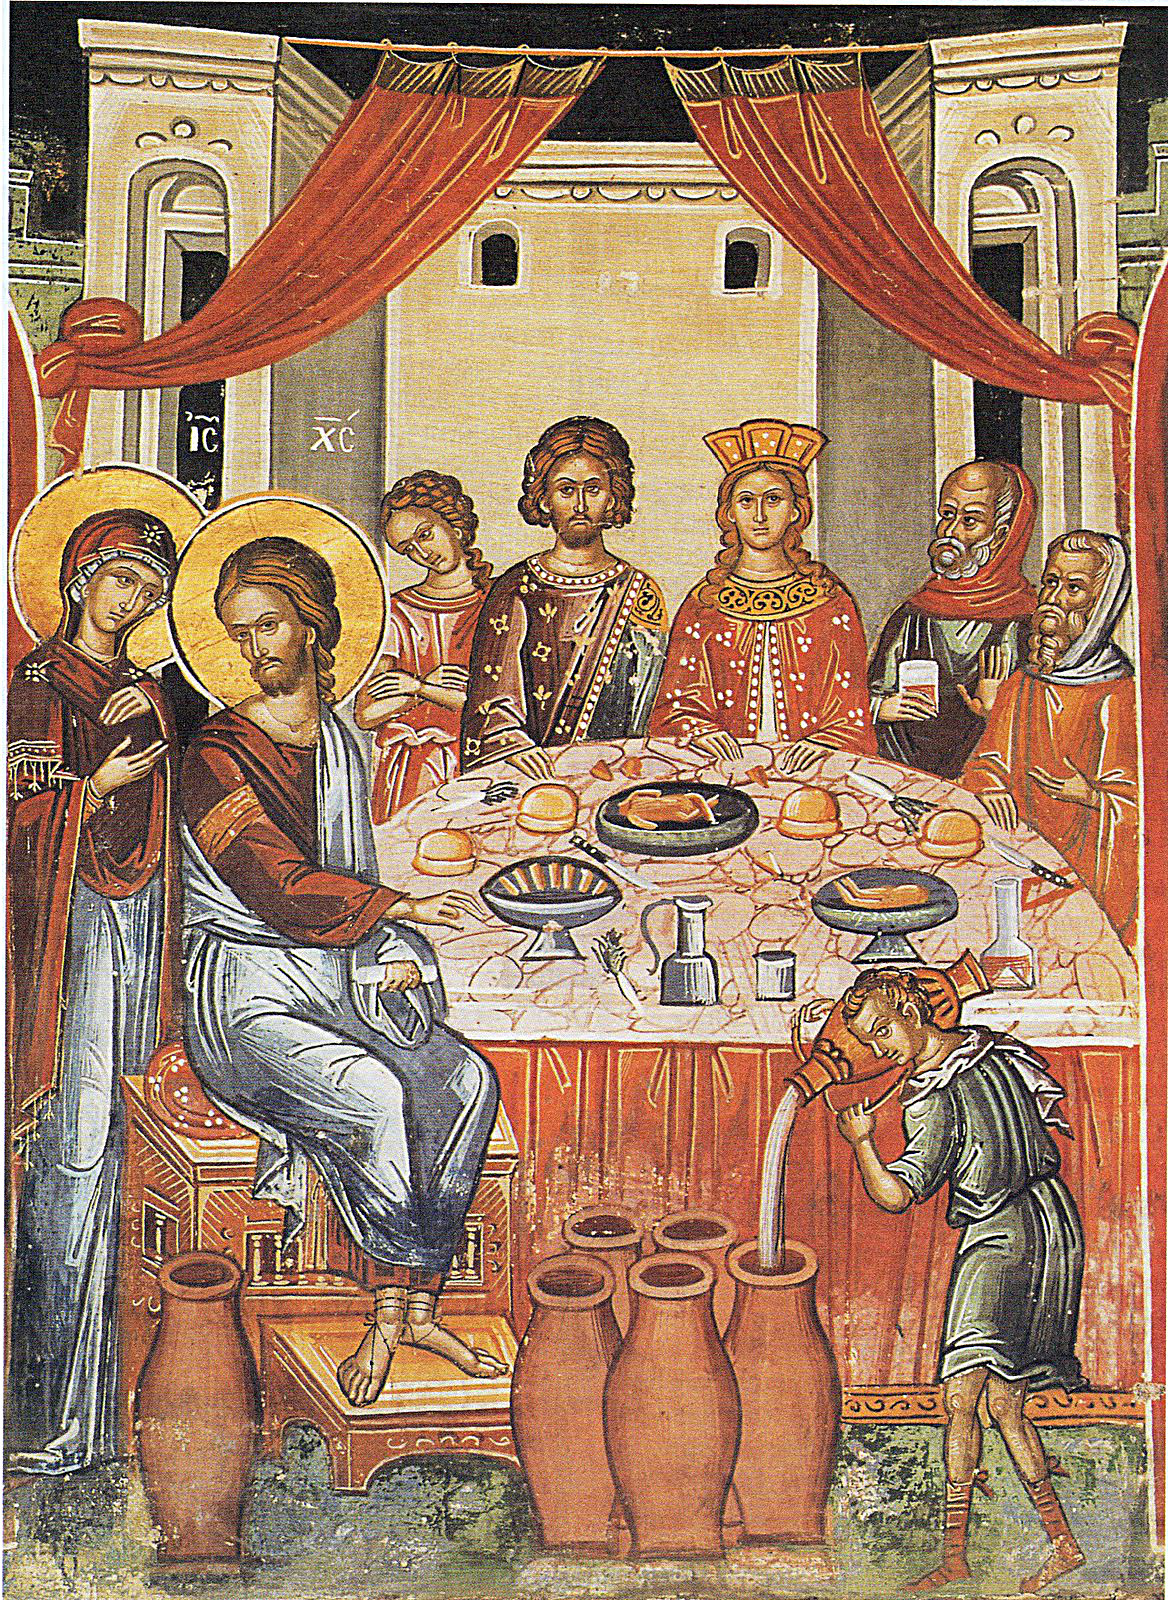 icon-wedding-at-cana